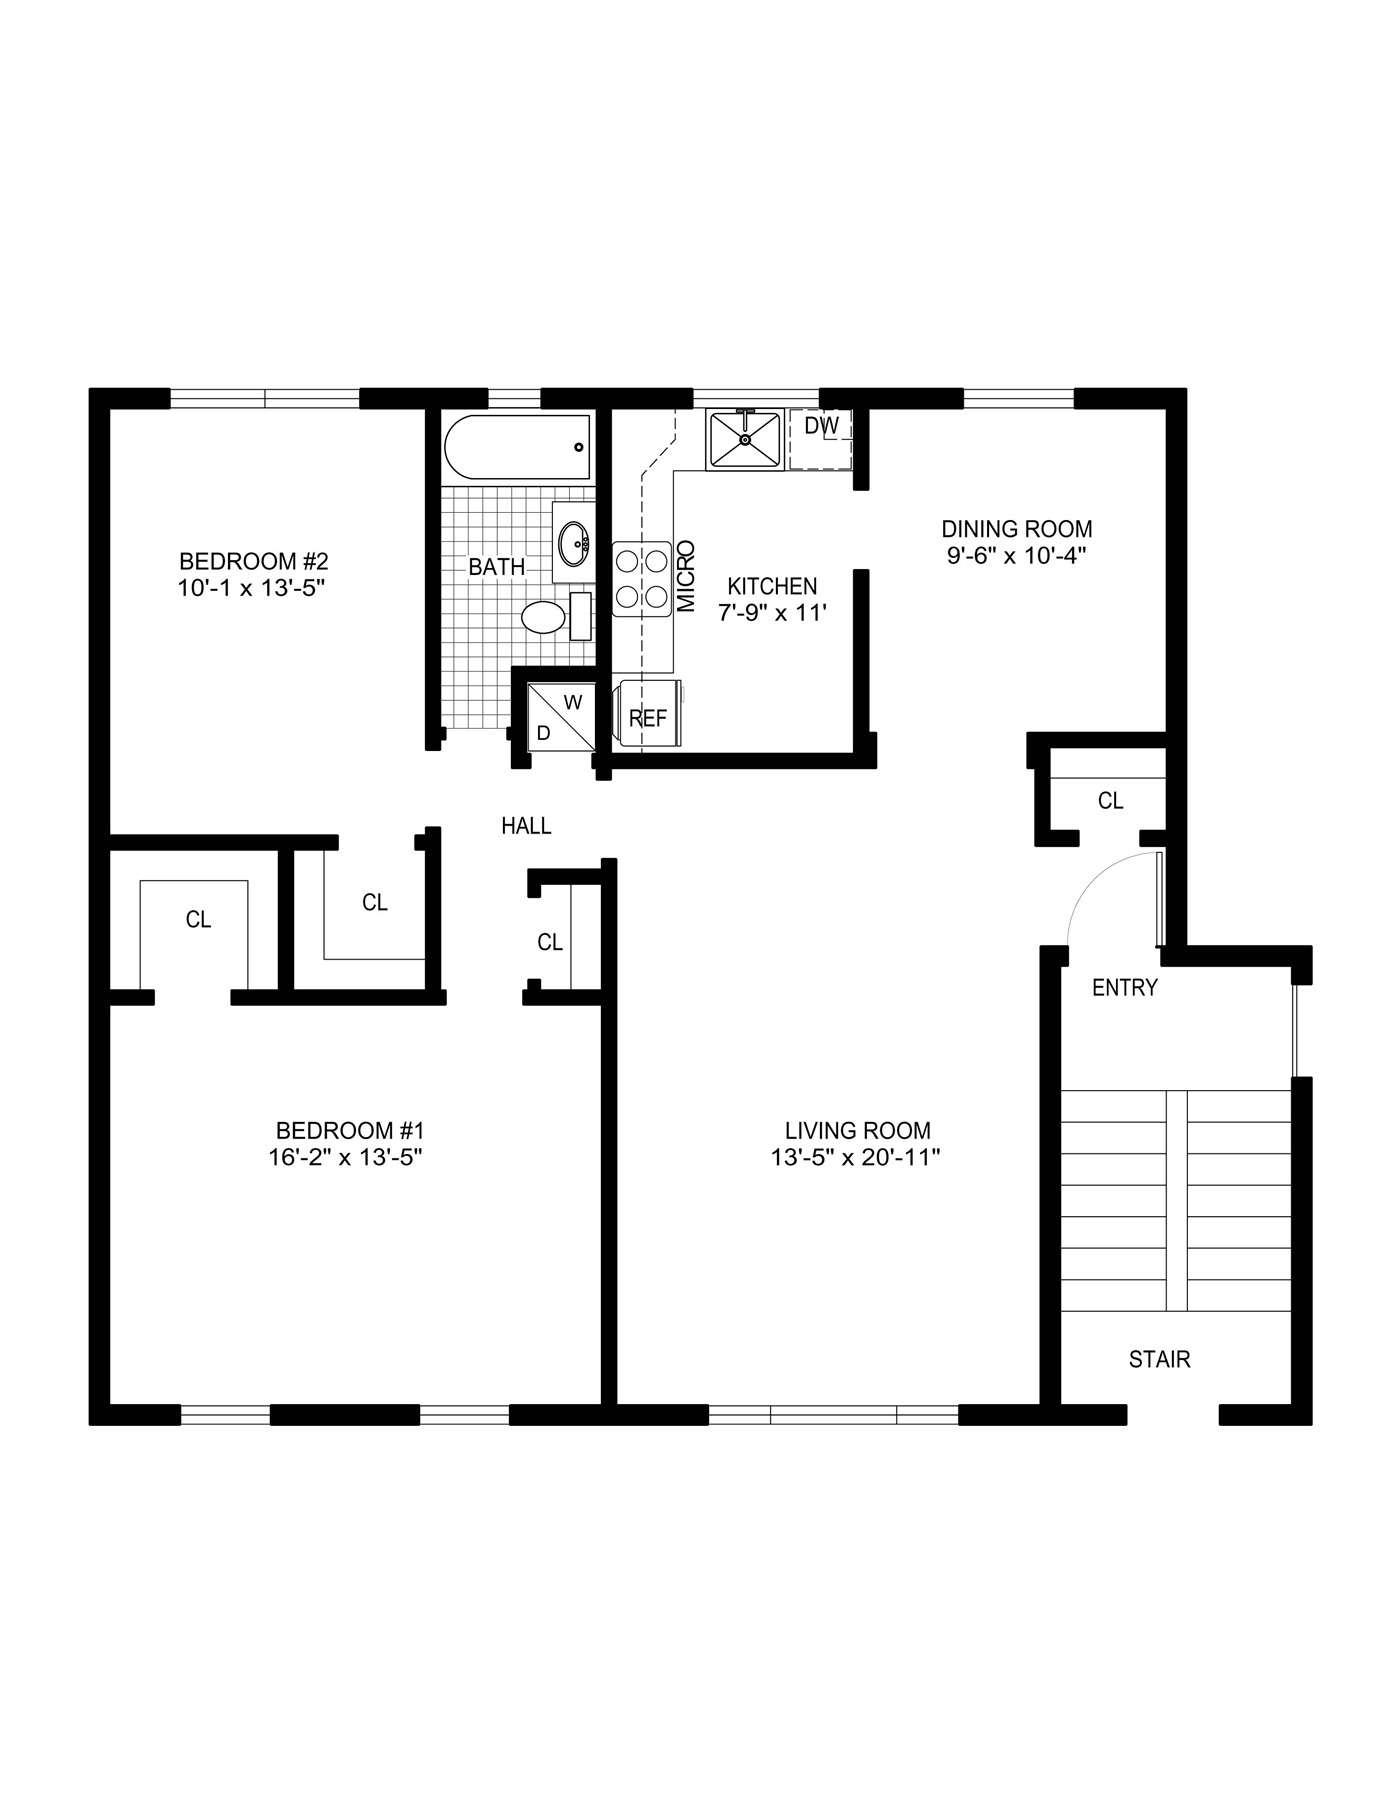 Easy to Build House Plans Elegant Simple Floor Plan Design Step Plans with Dimensions Draw